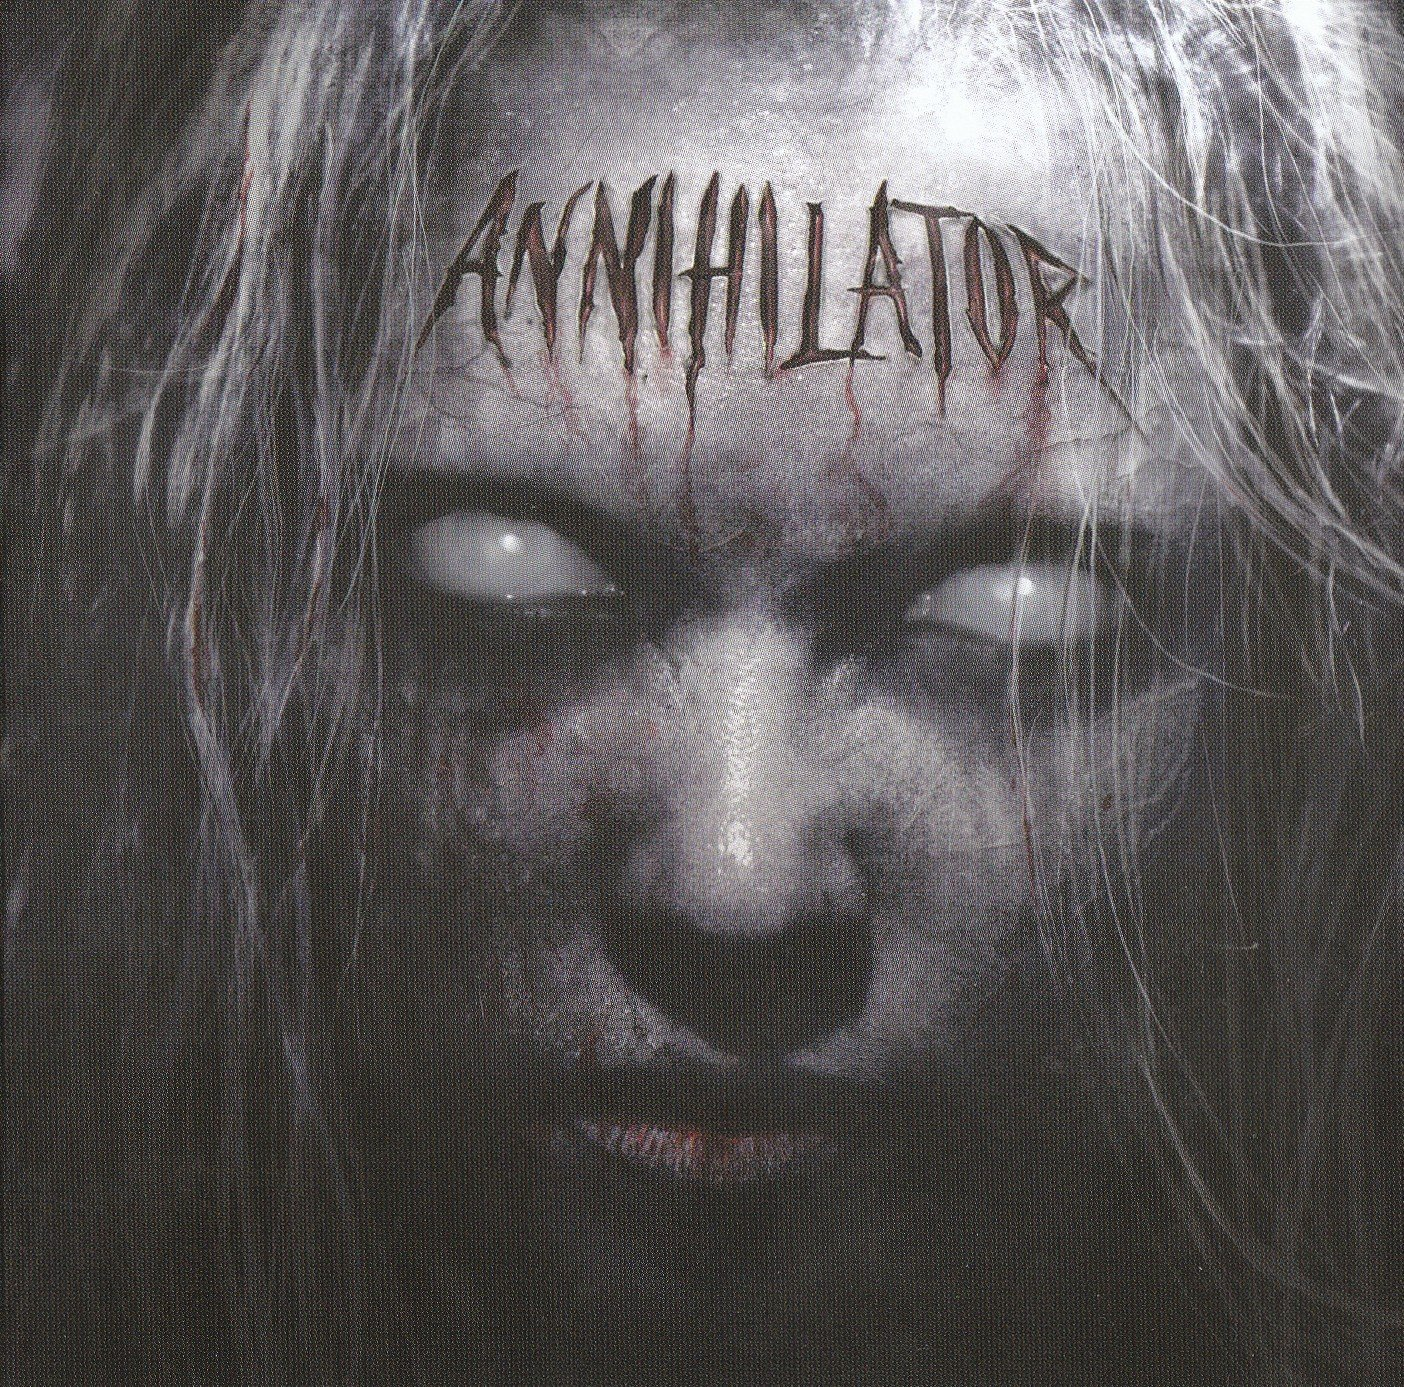 Annihilator - Alison Hell OFFICIAL VIDEO - YouTube